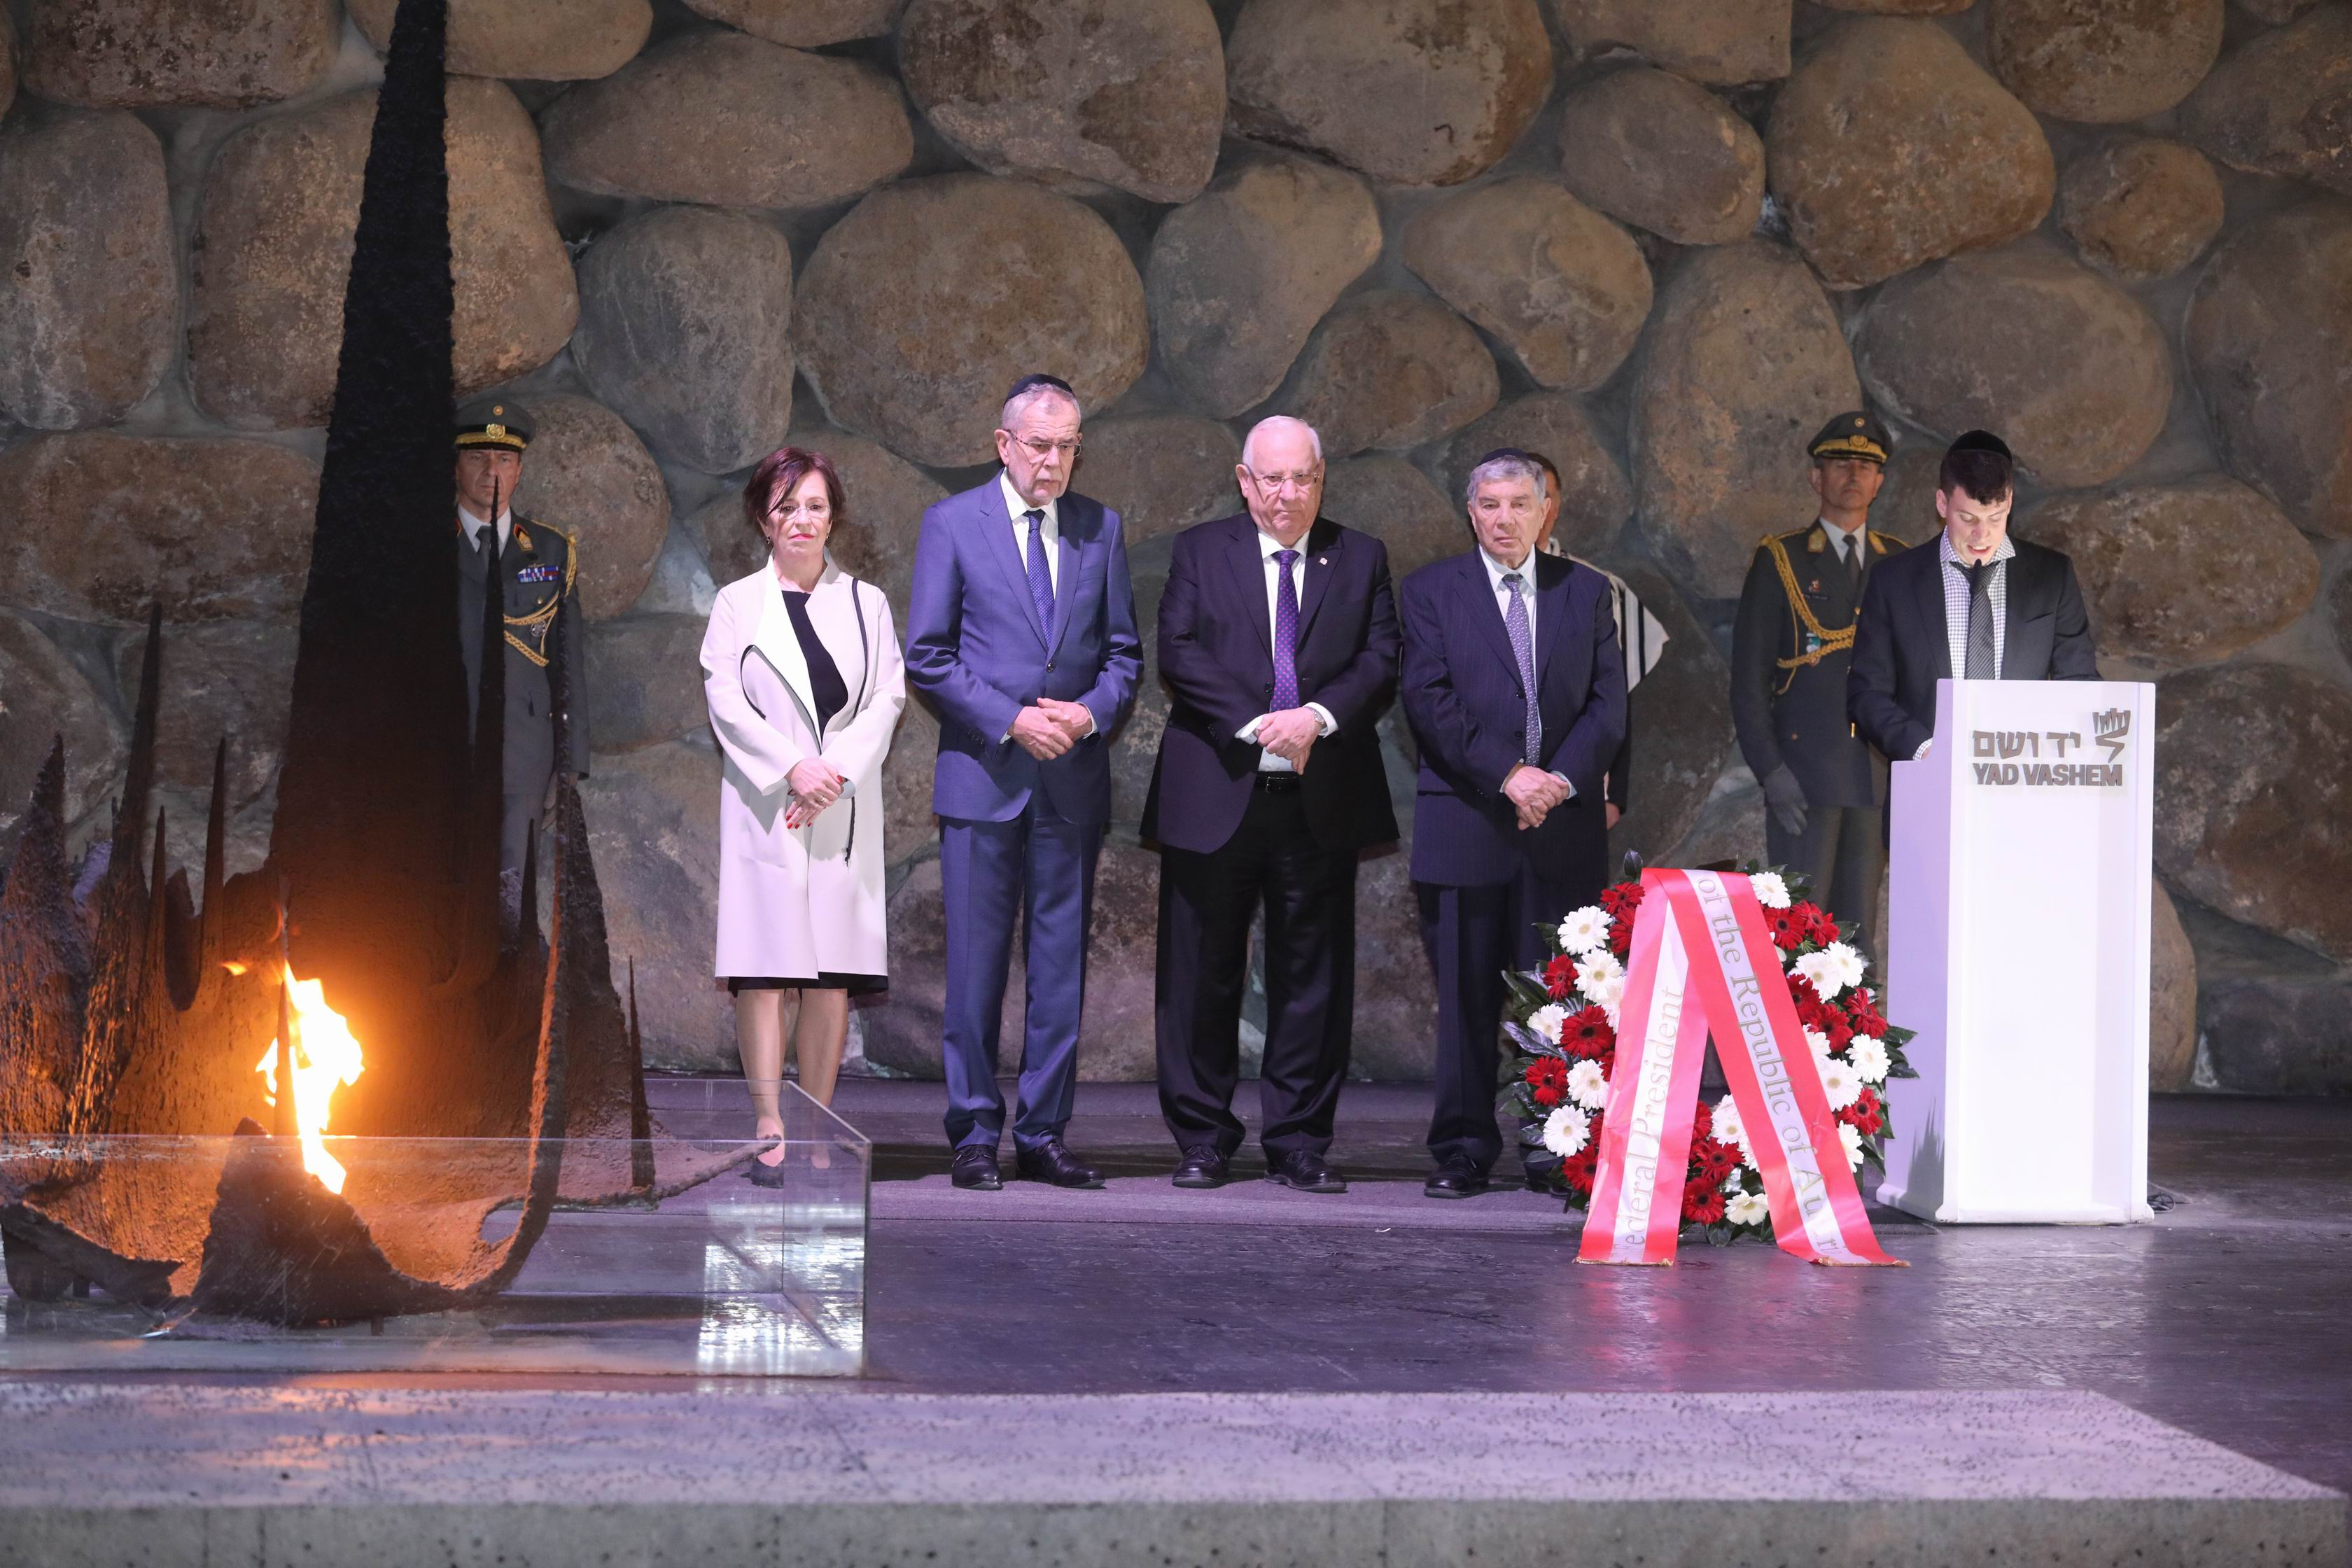 President Van Der Bellen participated in a memorial ceremony in the Hall of Remembrance together with Israeli President Reuven Rivlin